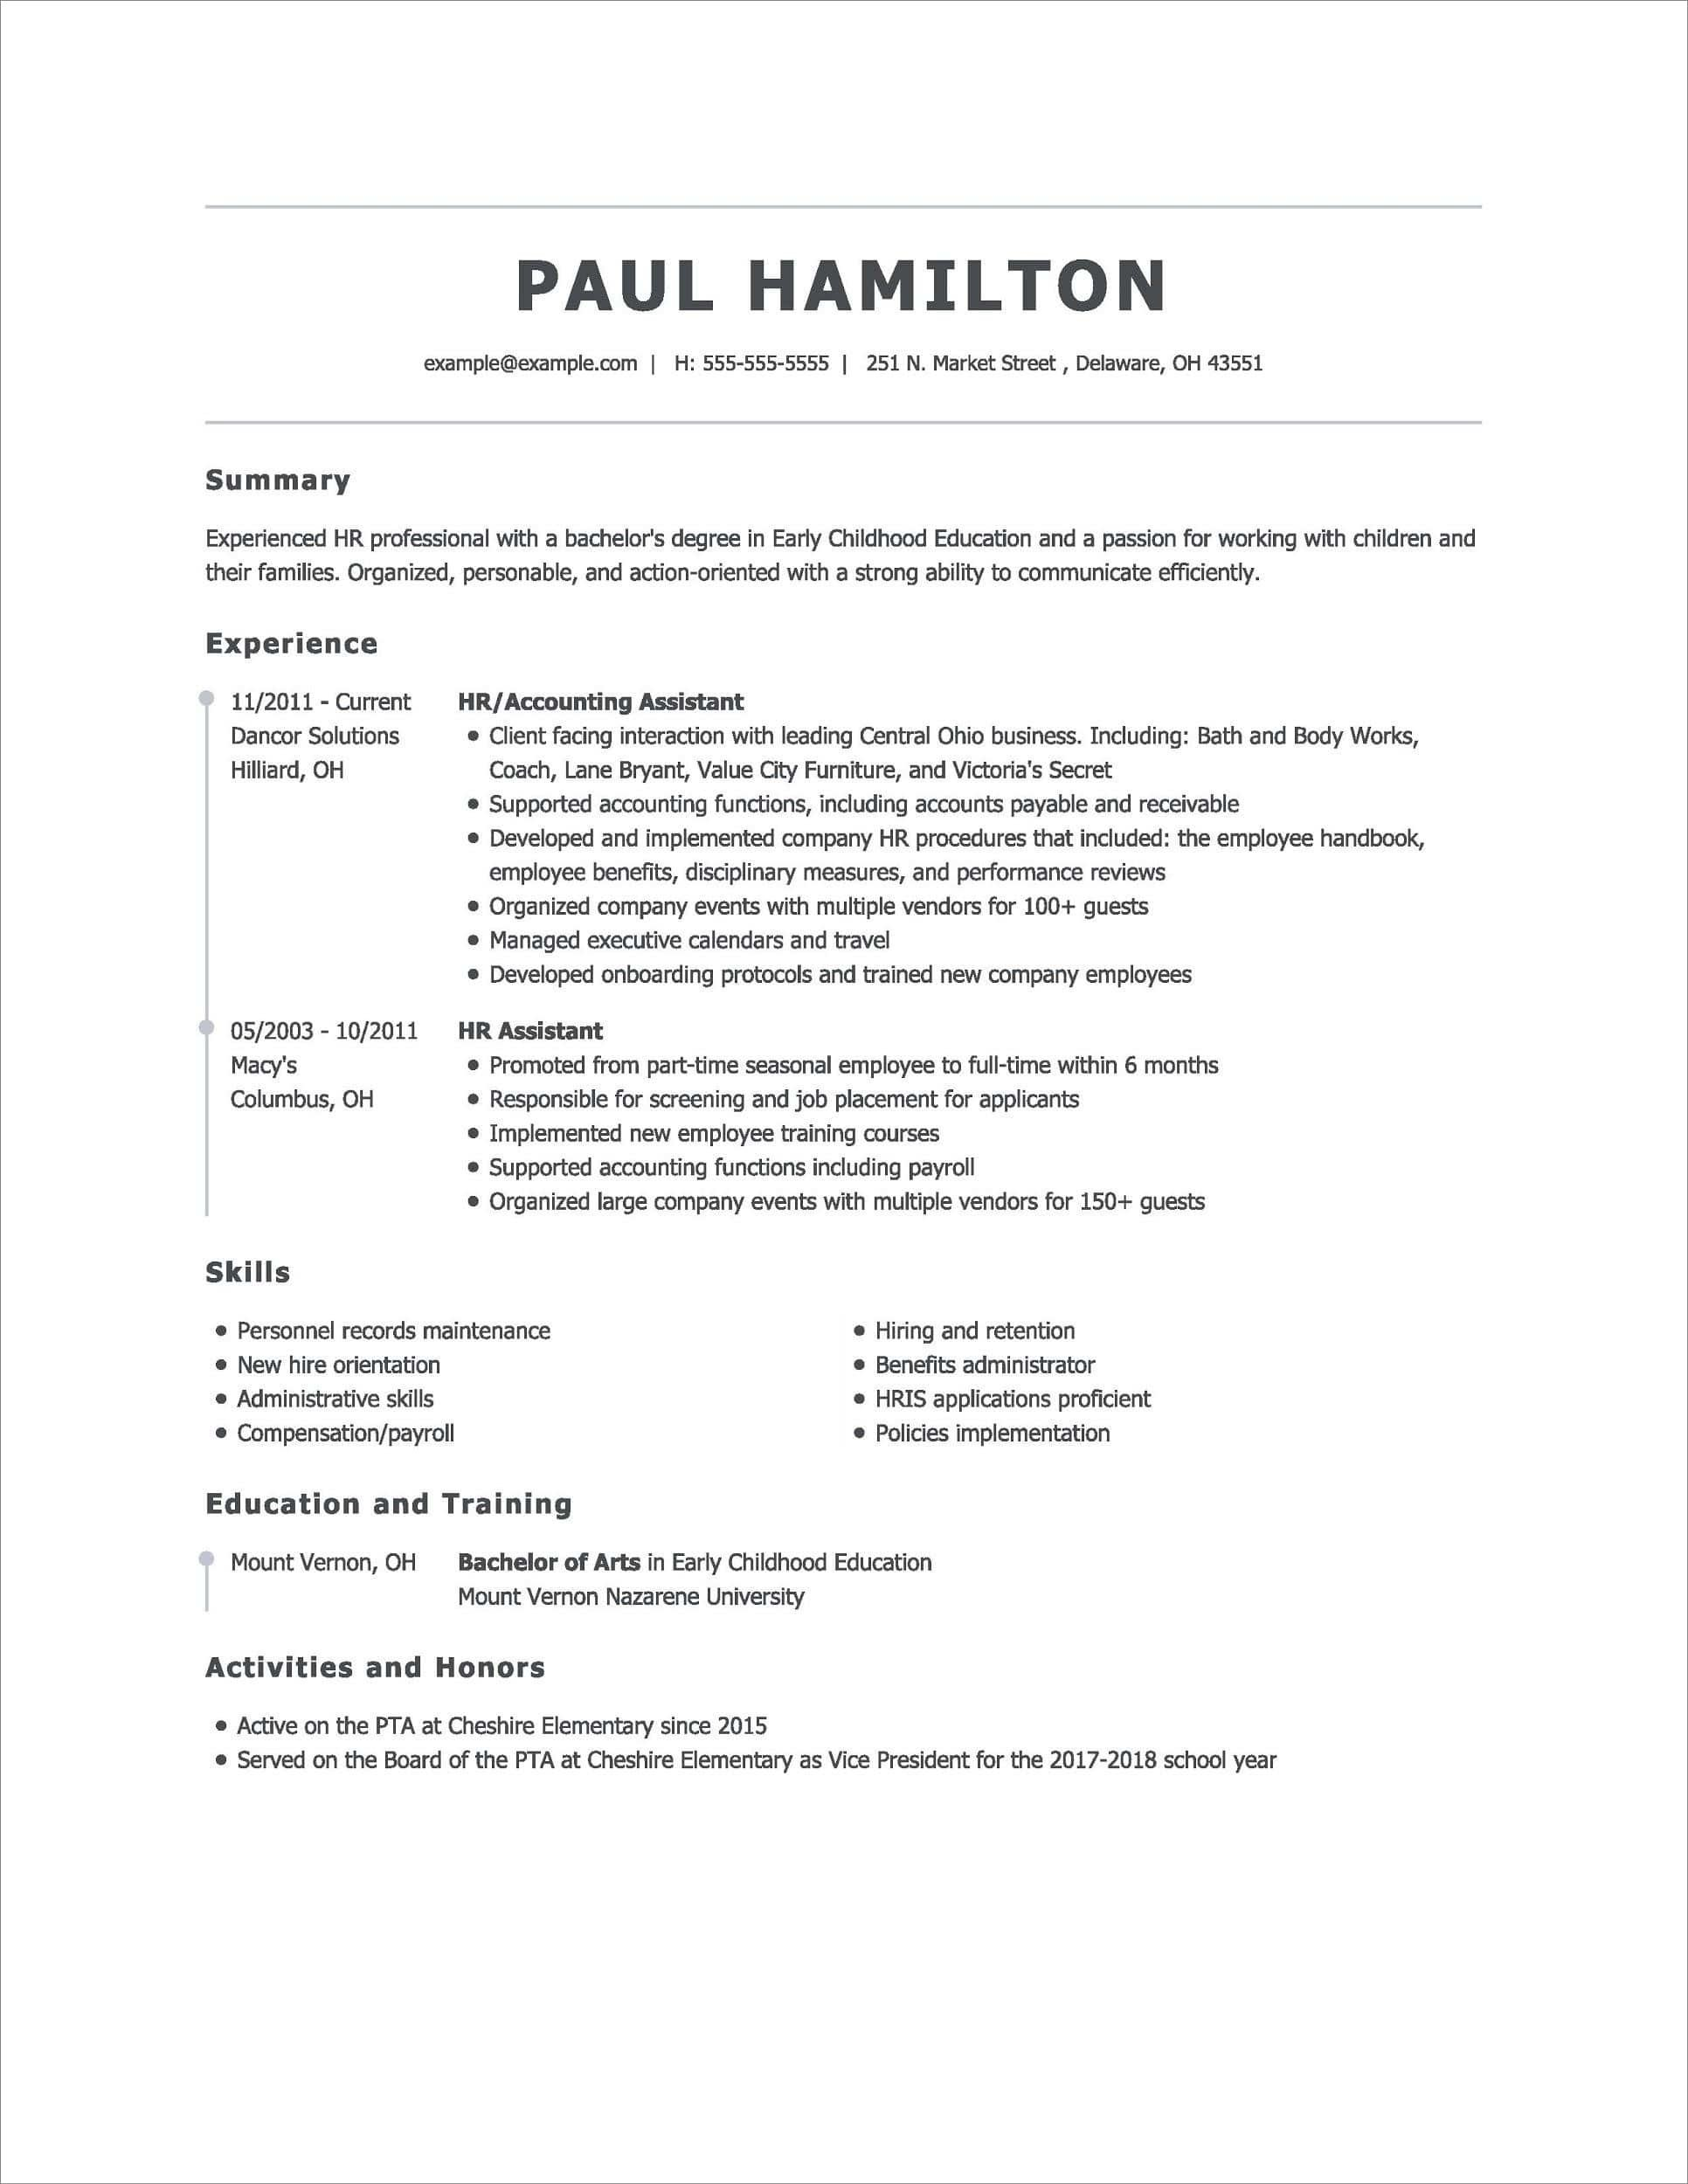 best resume builders free paid features builder for college students ndt format examples Resume Free Online Resume Builder For College Students